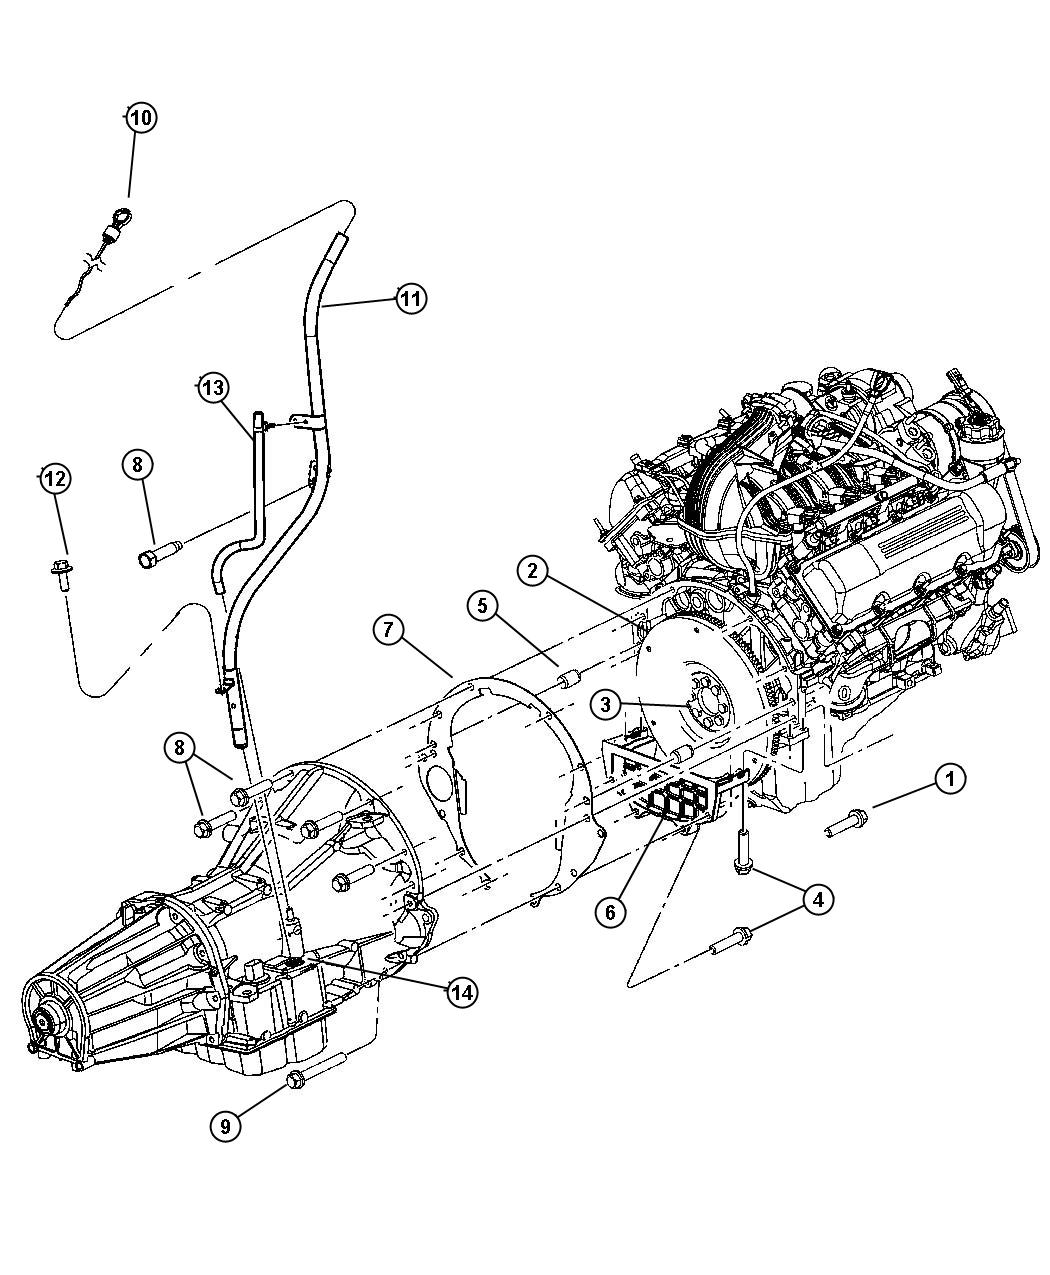 Wiring diagram 2003 jeep liberty wiring discover your wiring wiring diagram